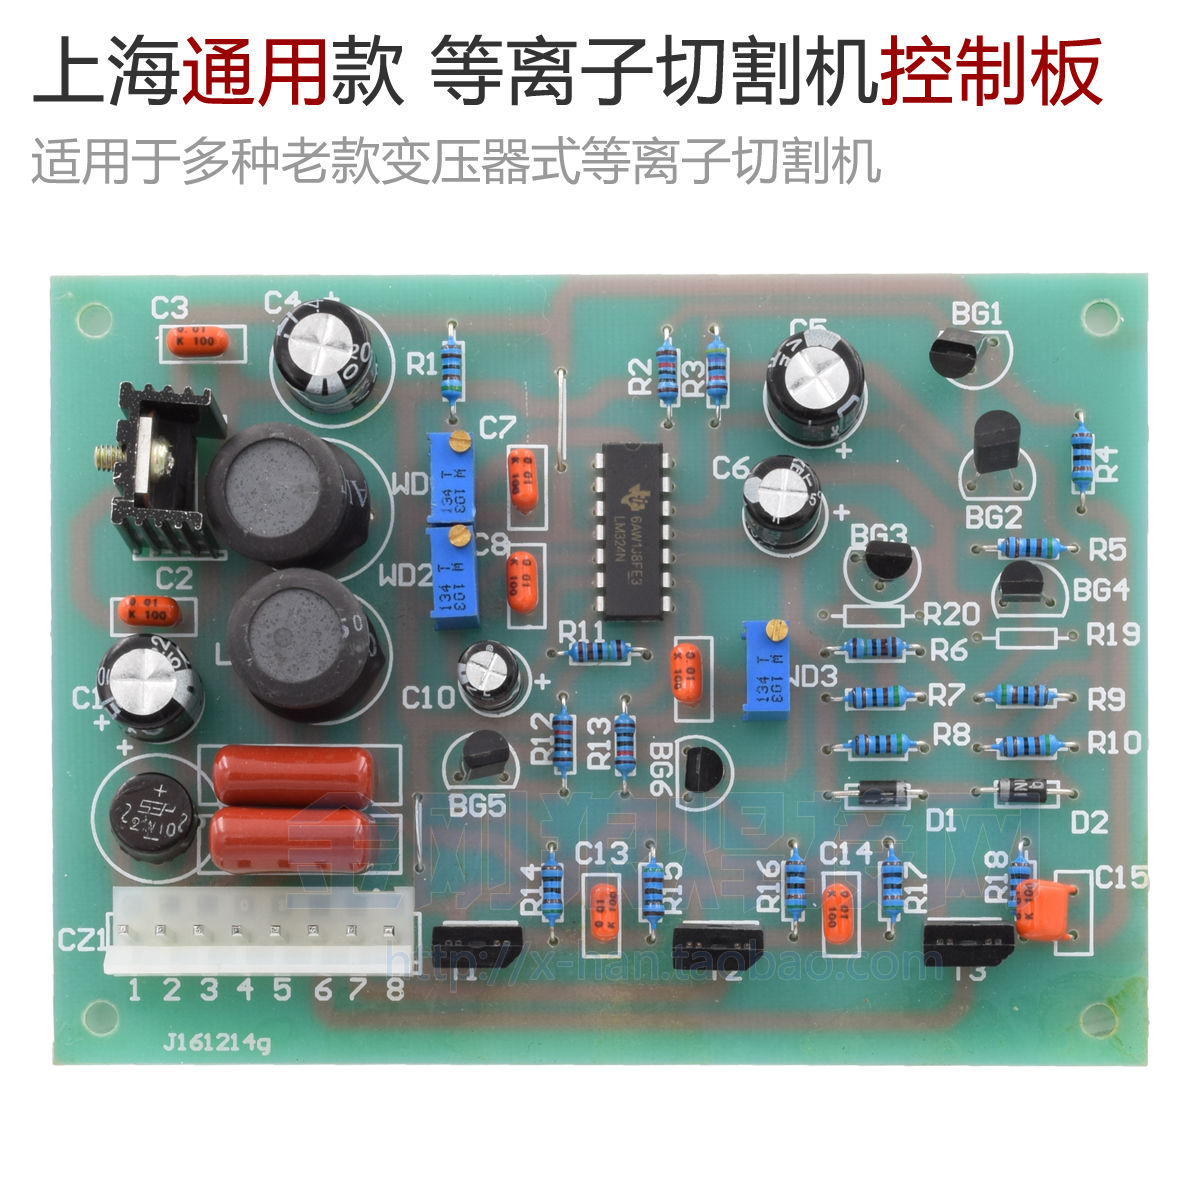 Ydt Shanghai General Transformer Type Old Cut Lgk Plasma Cutting Circuit Boards Images Of Machine Main Board Control In Arc Welders From Tools On